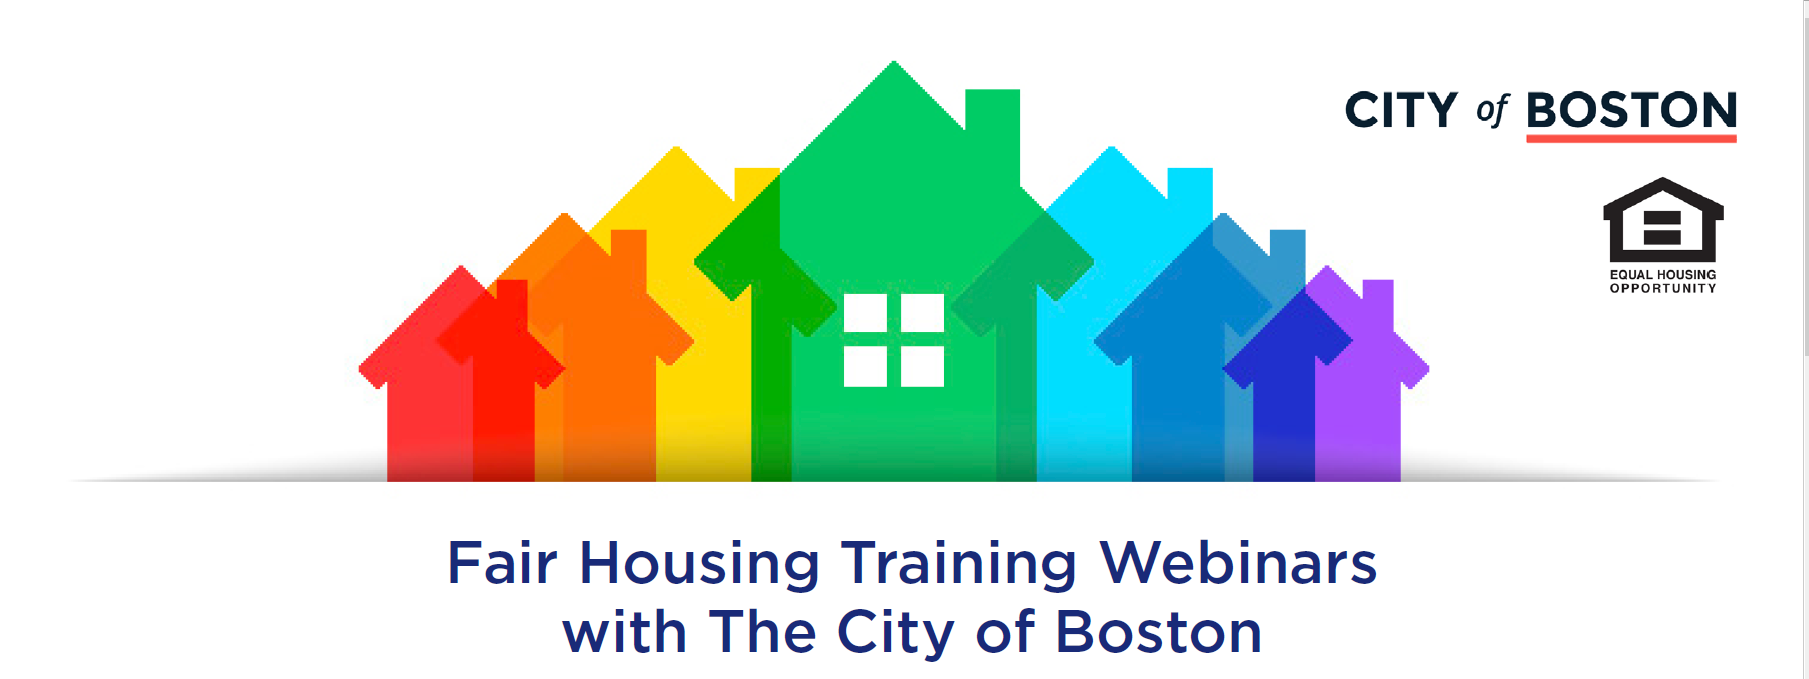 CE Webinar - Fair Housing Training- City Of Boston